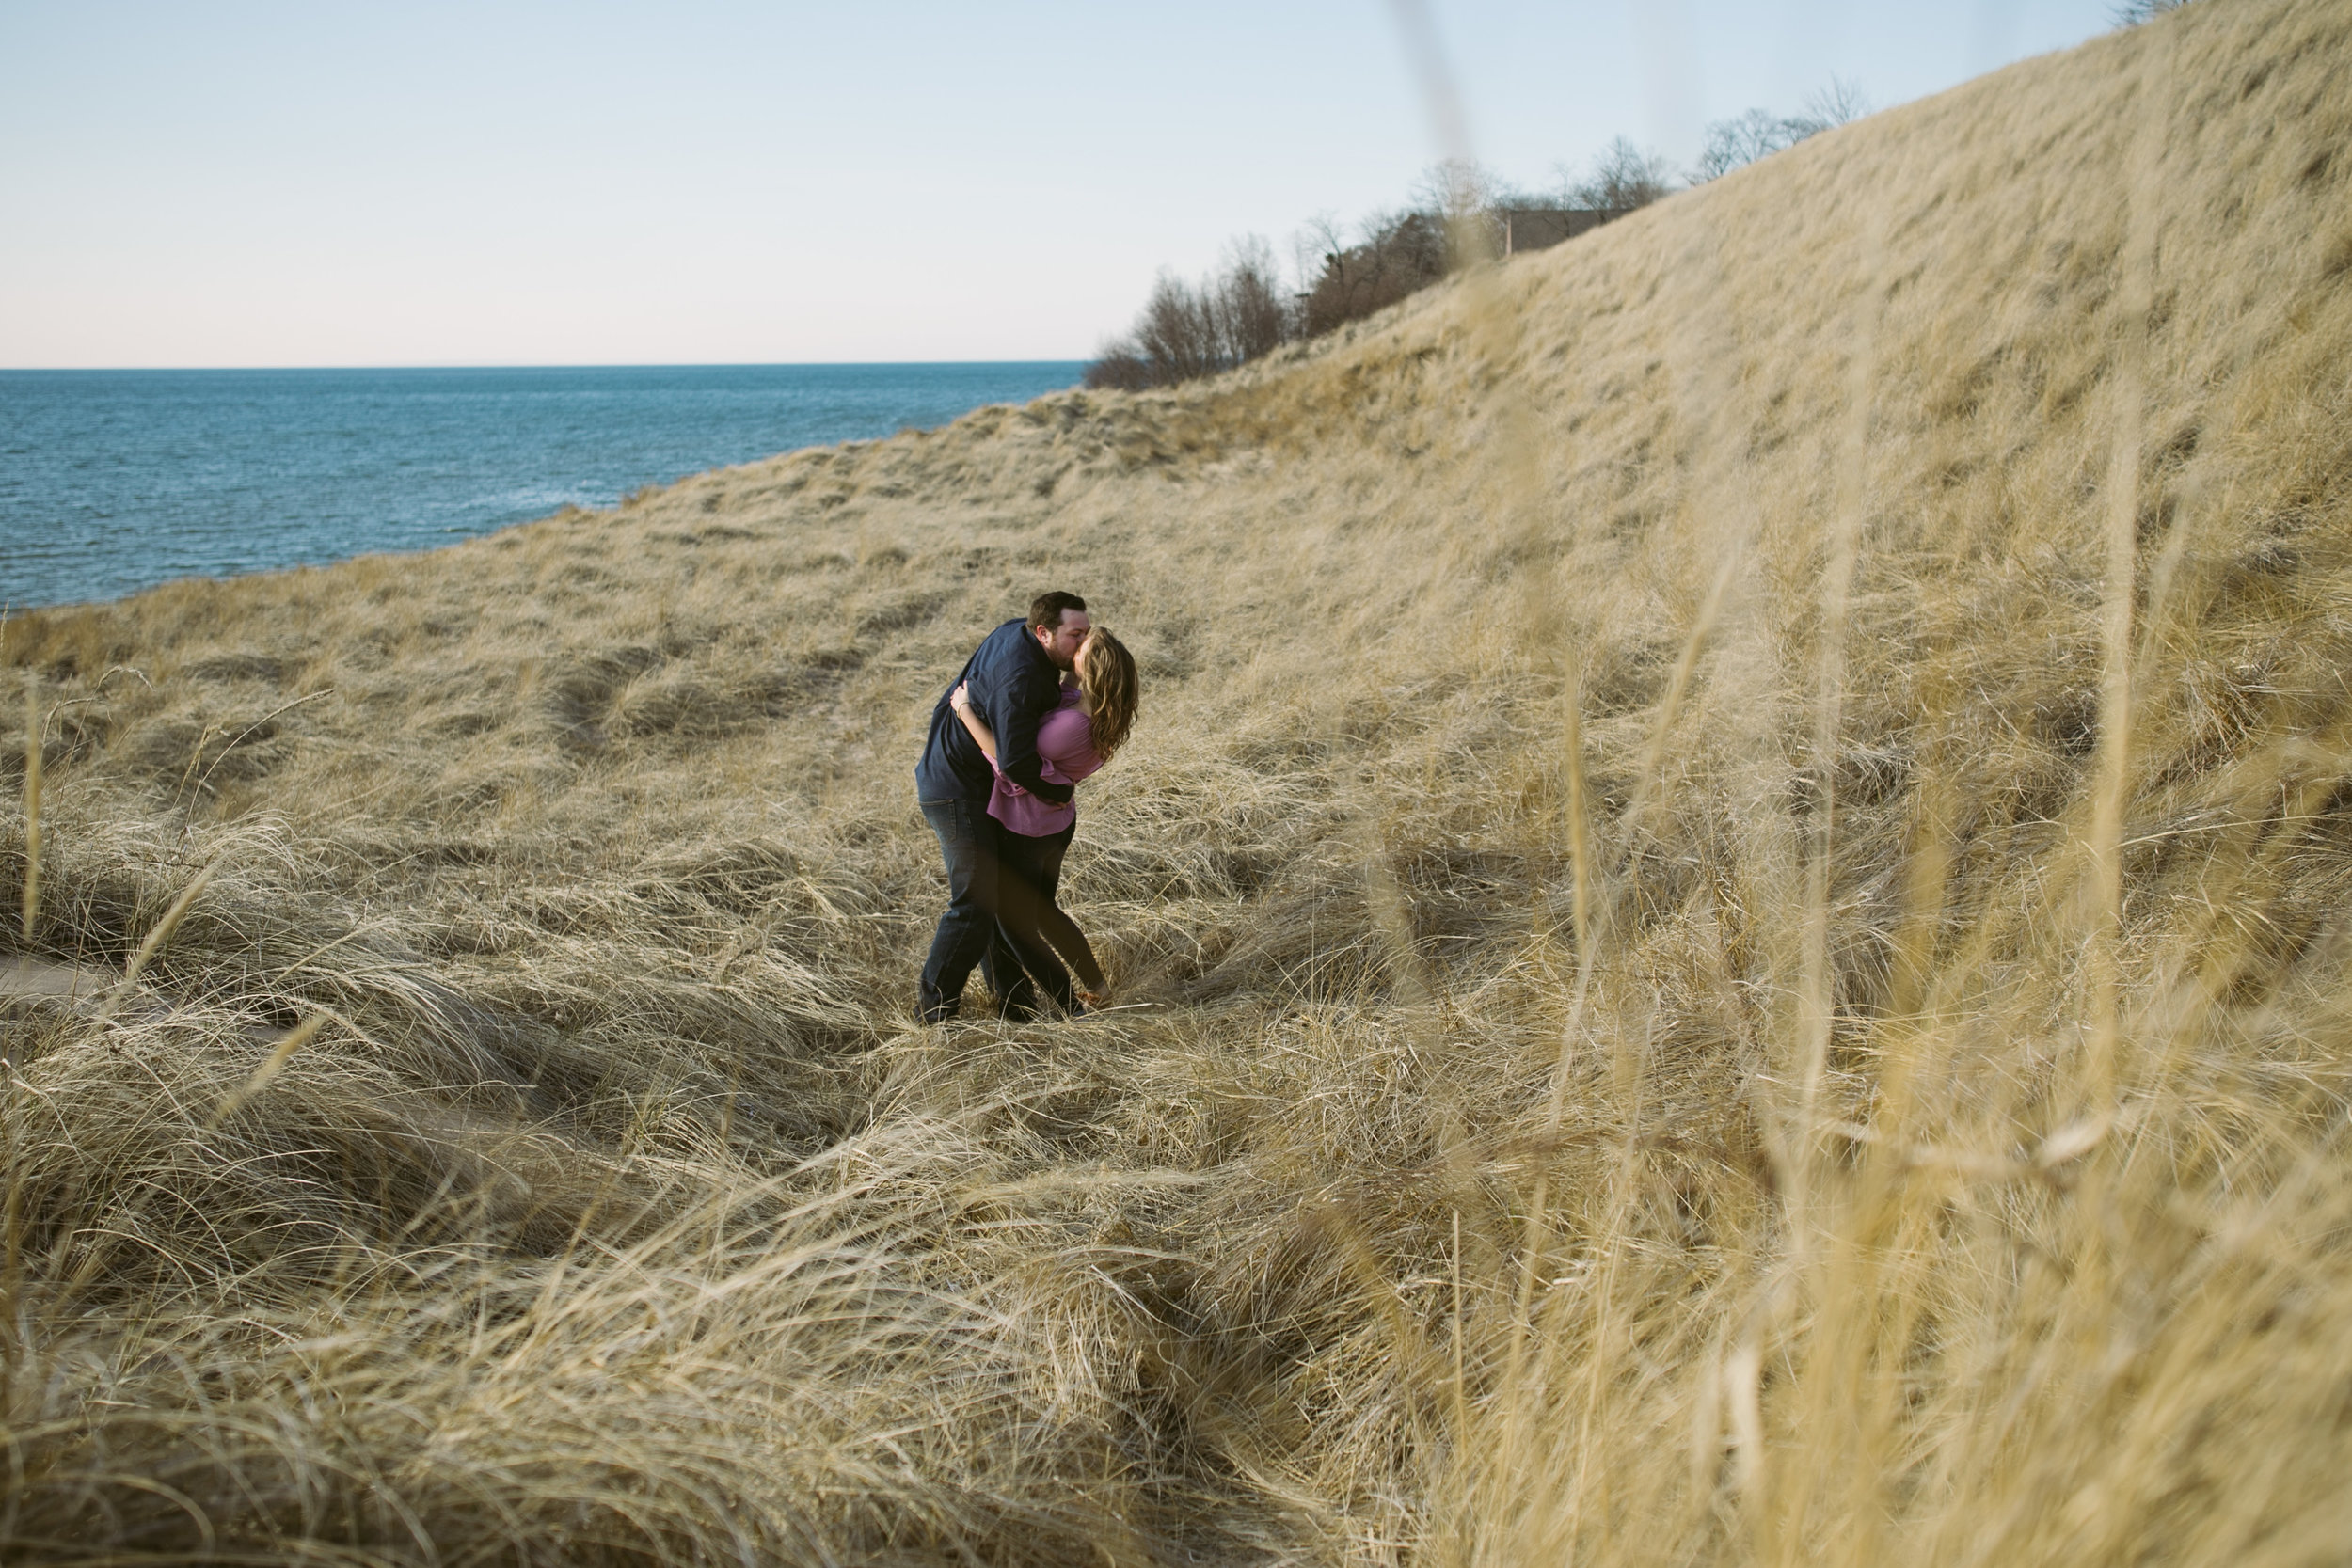 grandrapidsphotographer_hollandmichigan_hollandphotographer_lakemichigan_beachwedding_grandrapids_engaged_jessicadarling_jdarlingphoto_beachengagement014.jpg